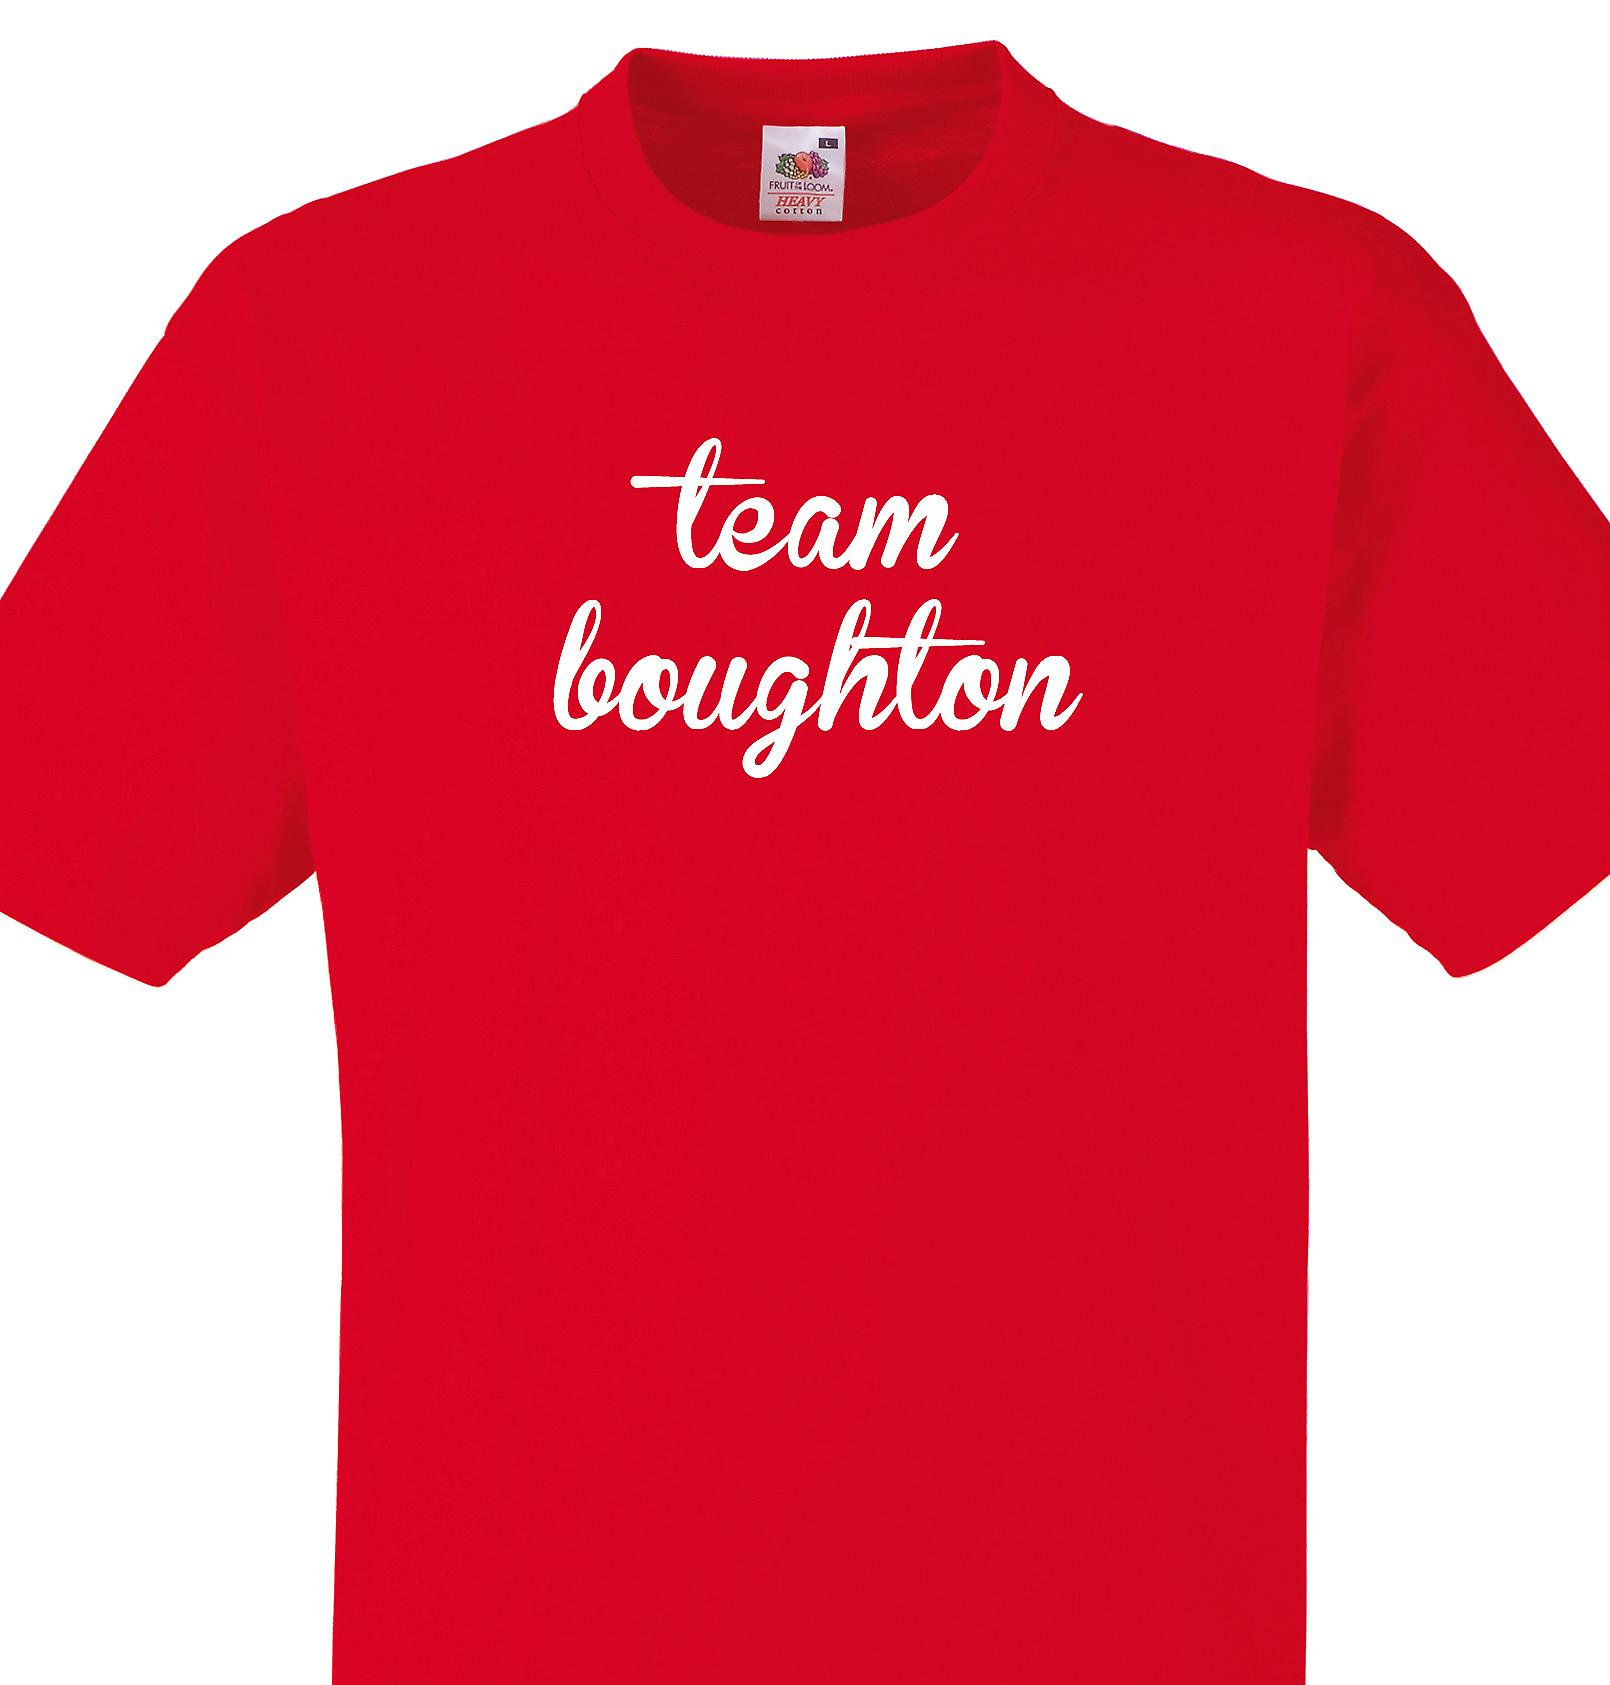 Team Boughton Red T shirt